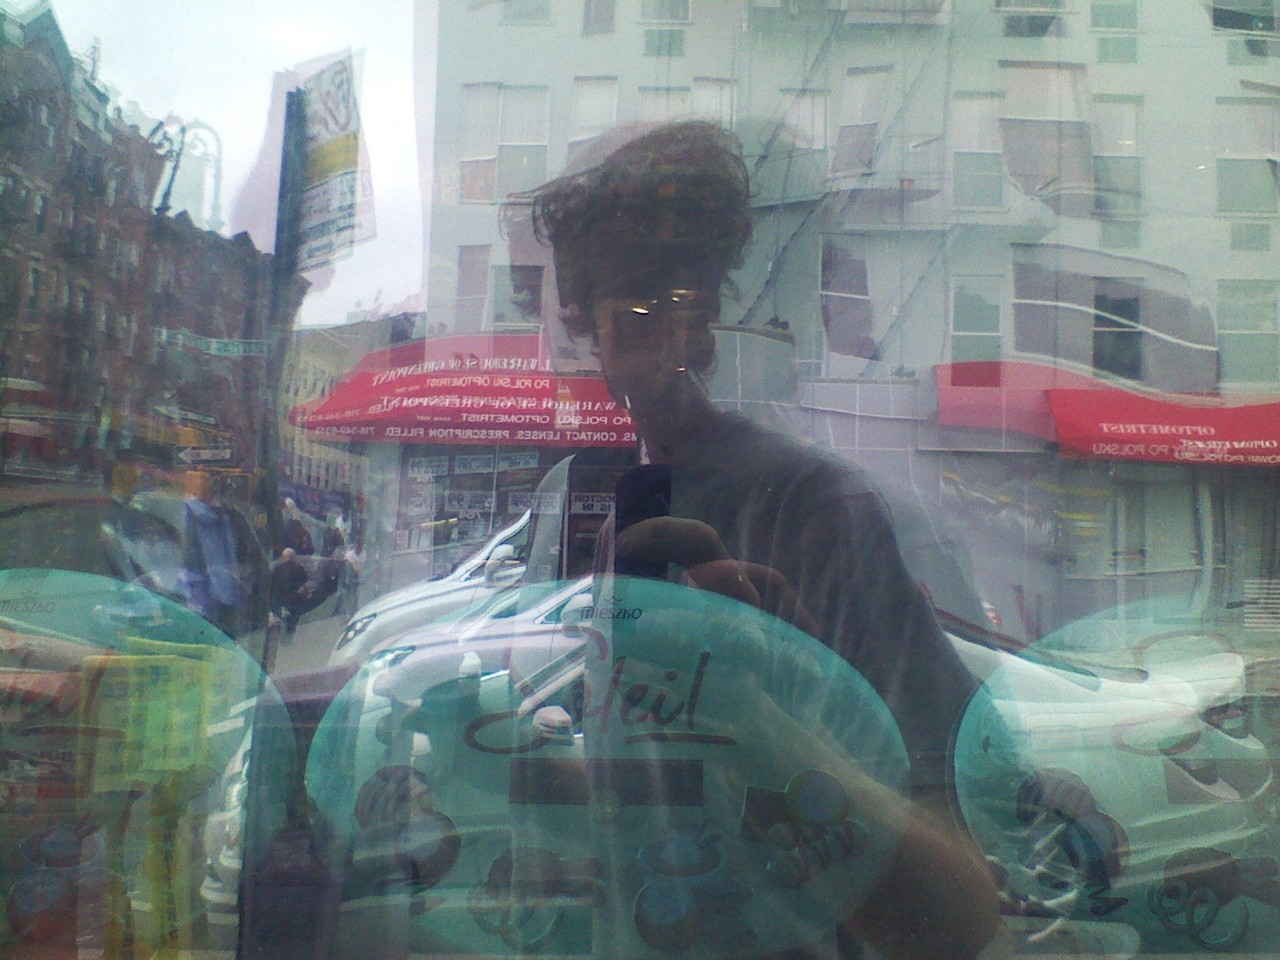 pic self-portraiture outside greenpoint chocolate store